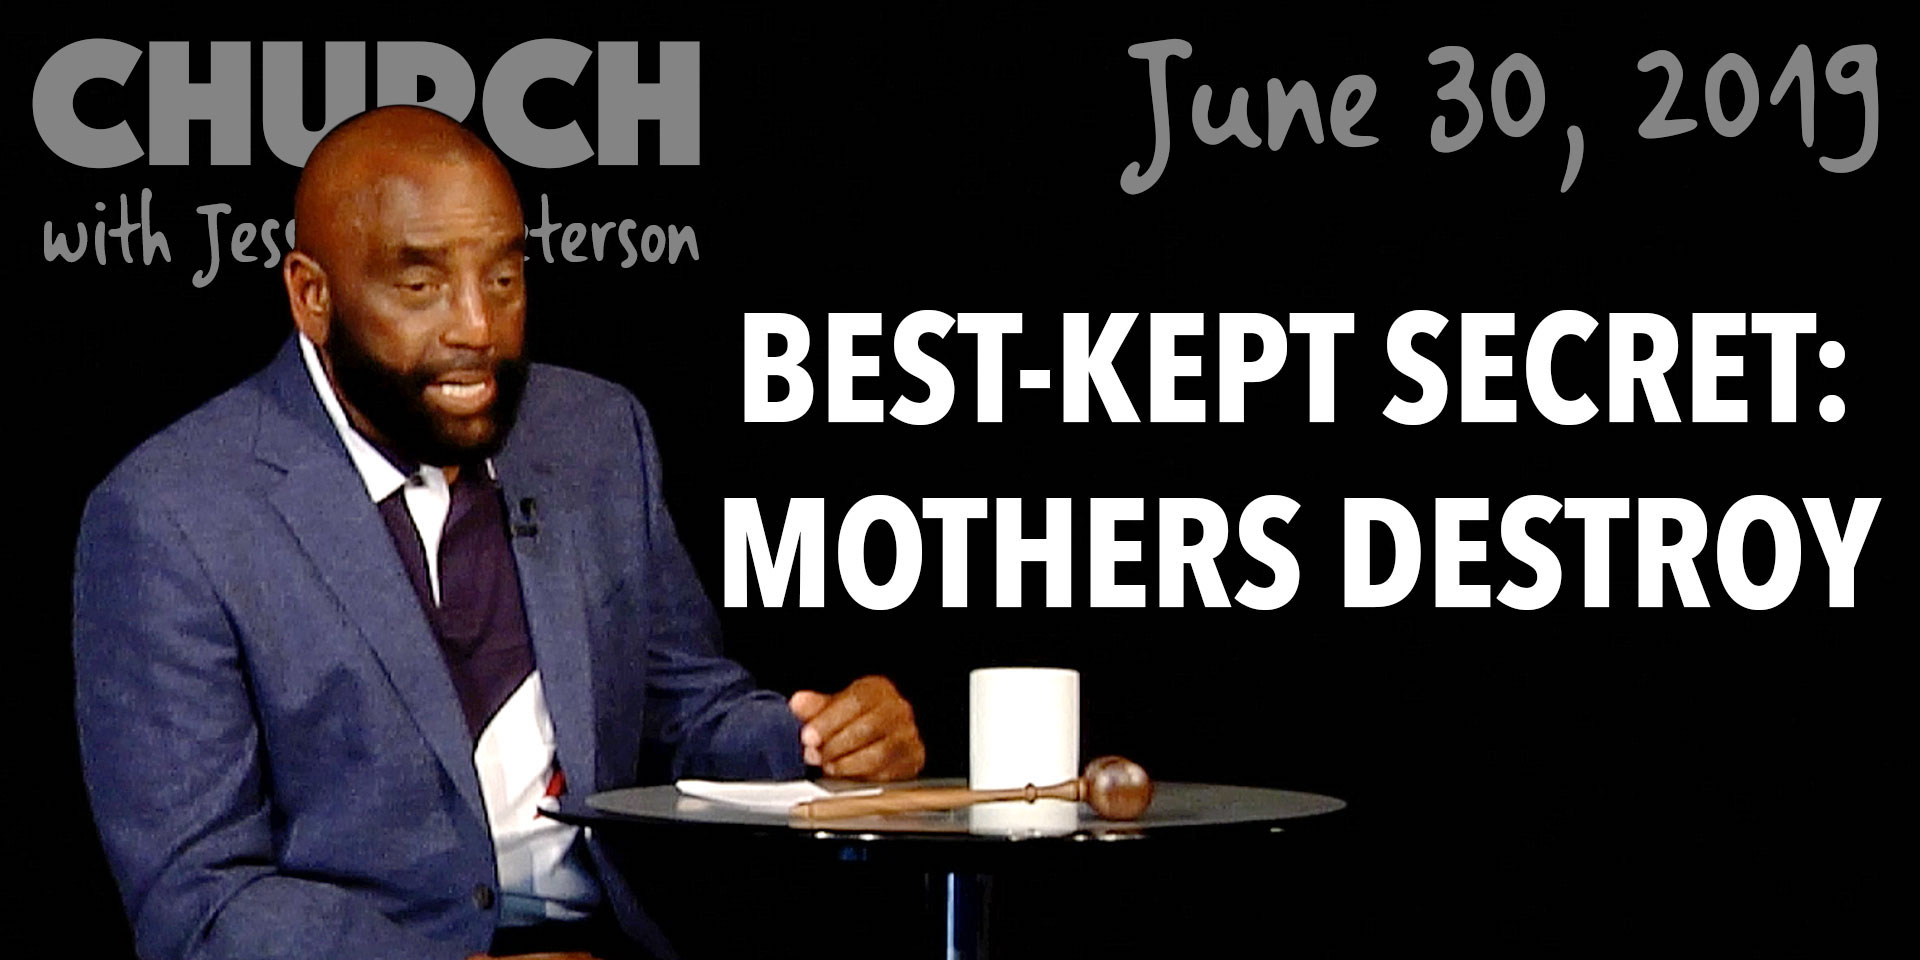 Best-Kept Secret: Mothers Destroy (Church, Jun 30, 2019)